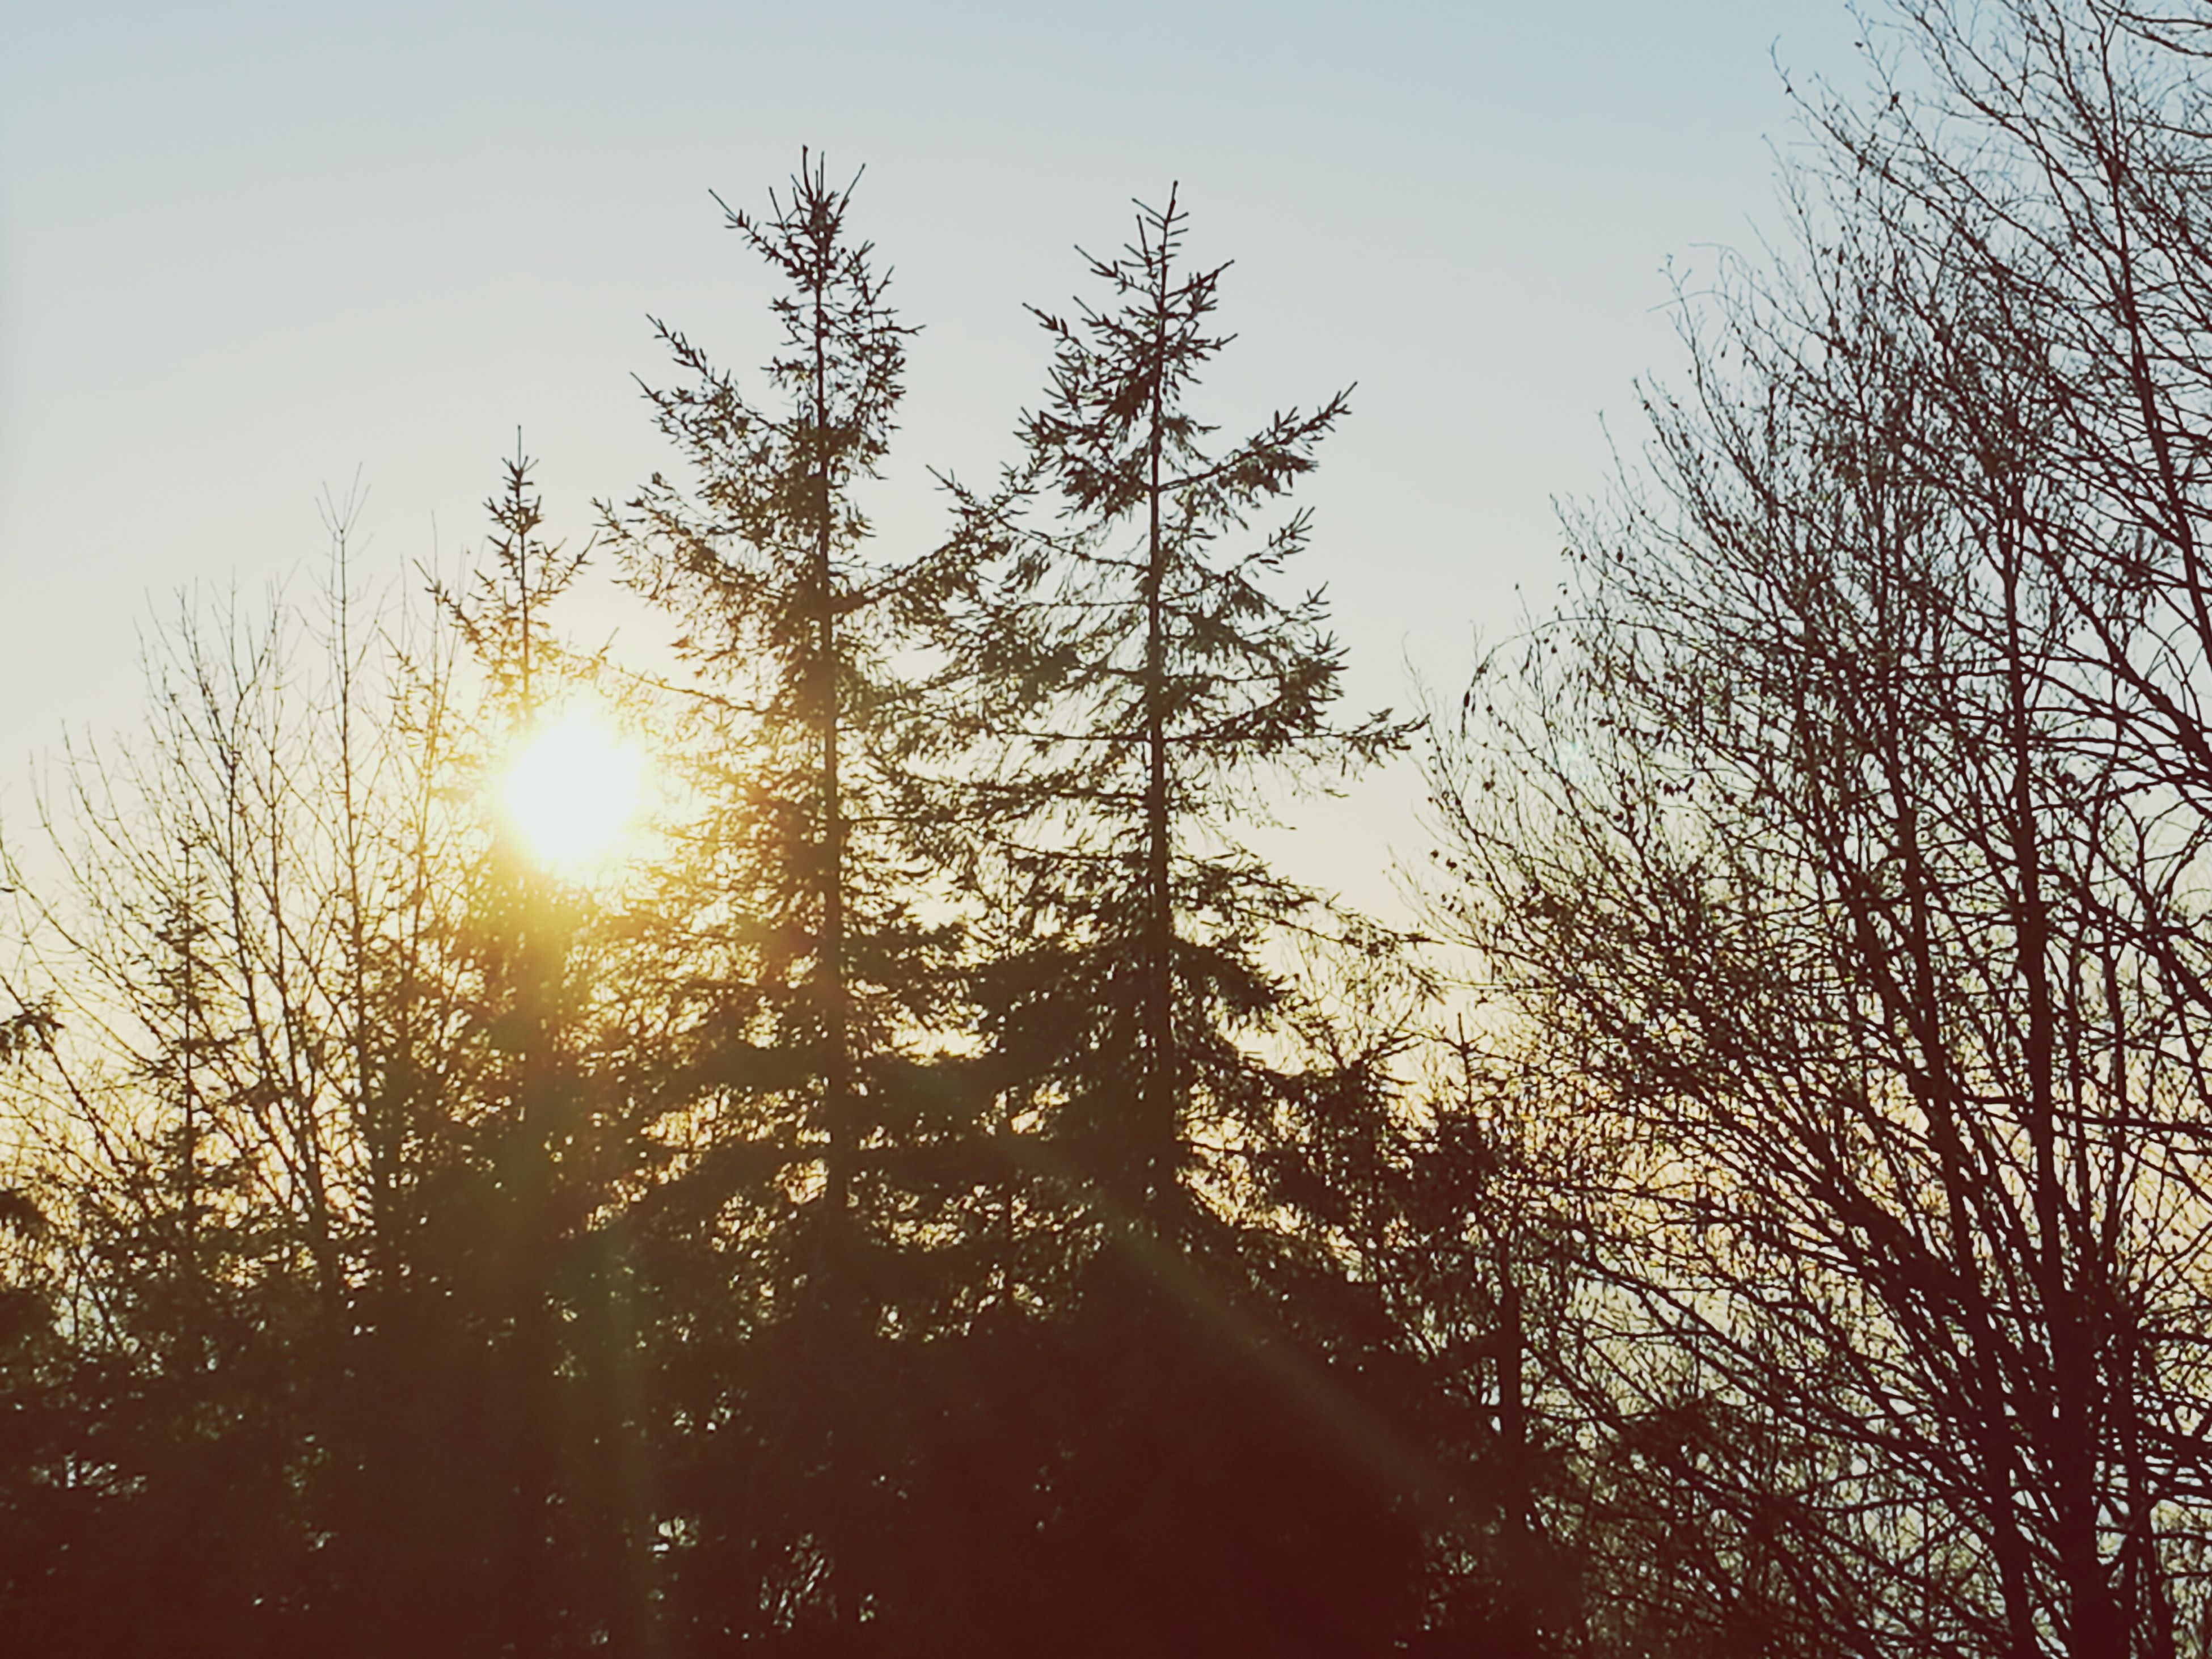 sunset, nature, sun, beauty in nature, sunlight, growth, no people, tree, low angle view, tranquility, sky, outdoors, scenics, tranquil scene, close-up, day